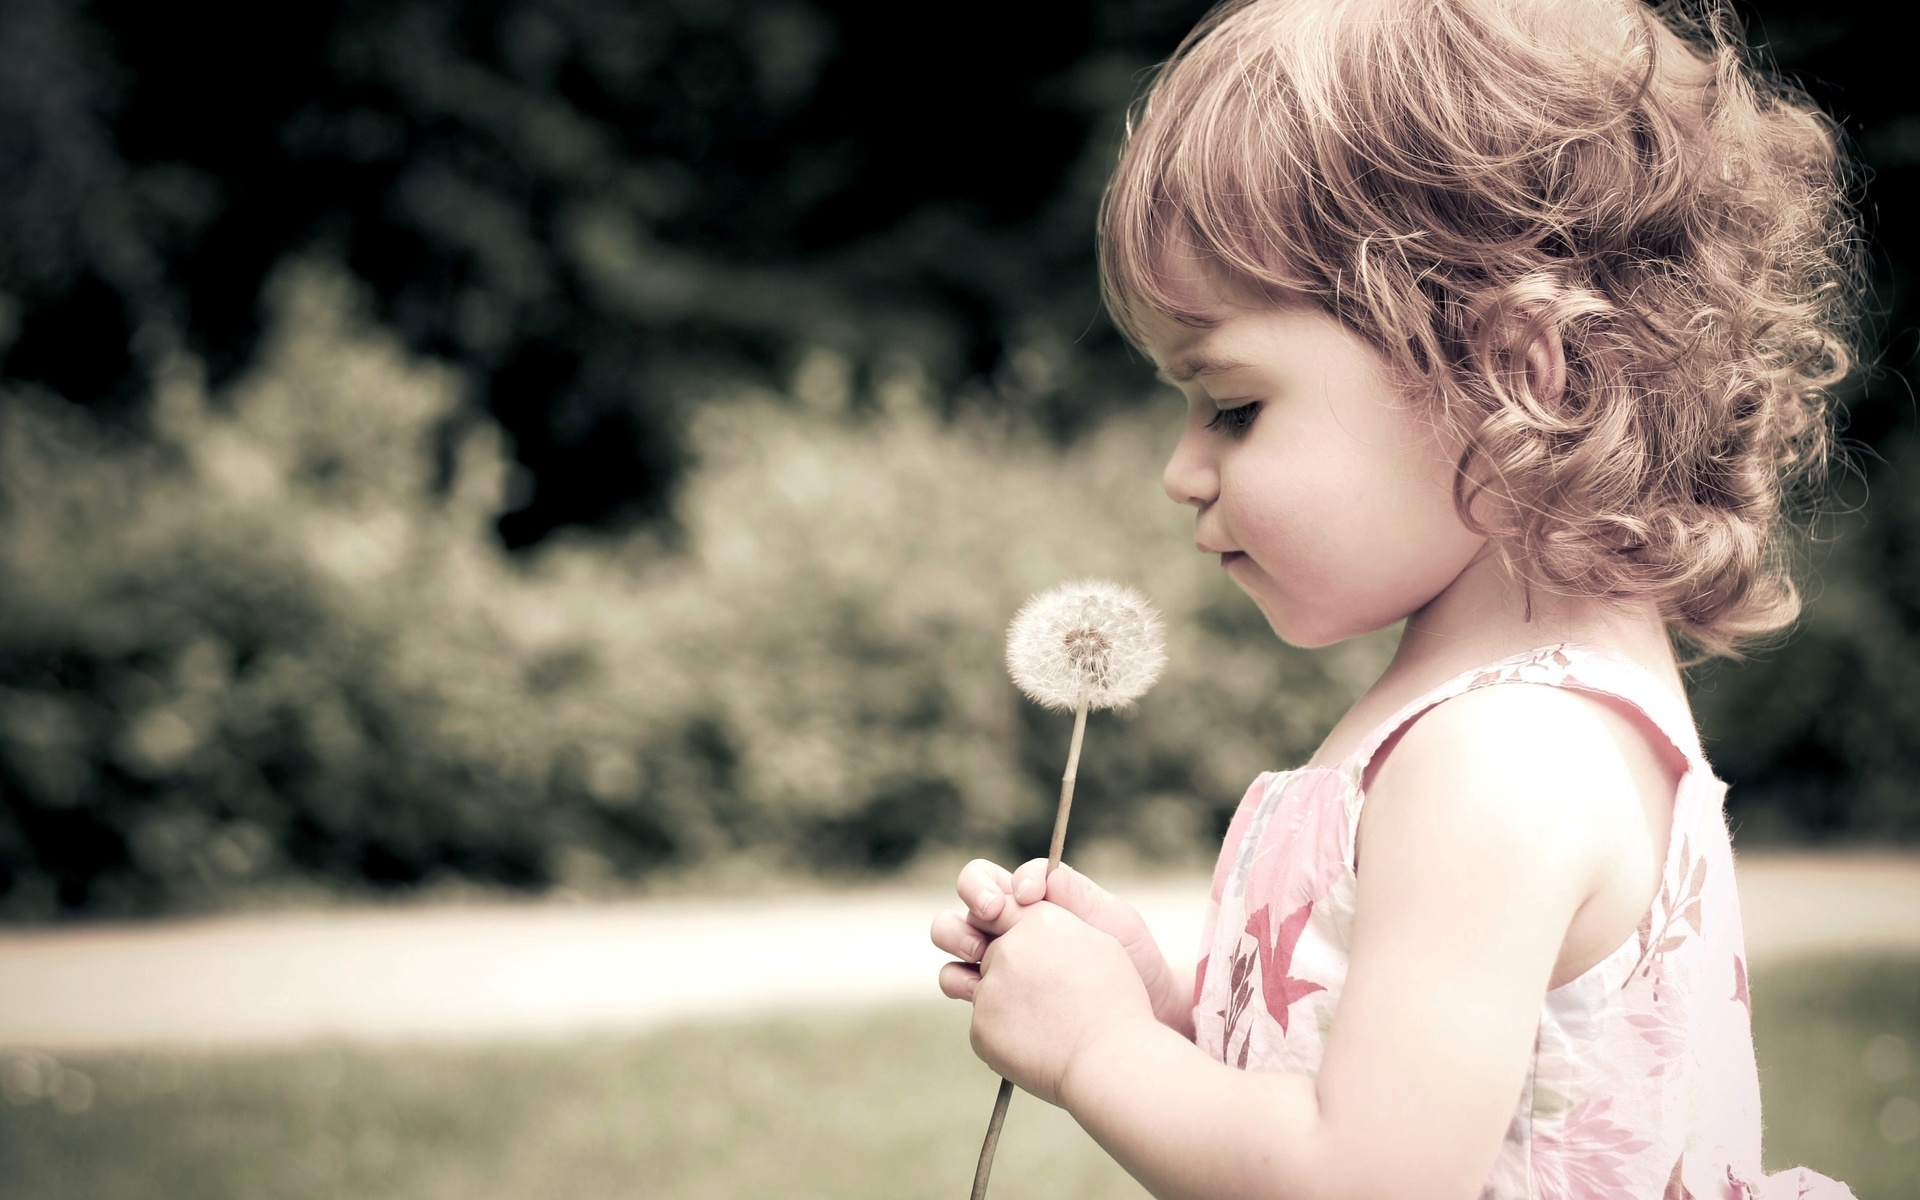 Baby full hd wallpaper and background image 1920x1200 id271510 photography baby girl child face little girl adorable dandelion wallpaper voltagebd Choice Image